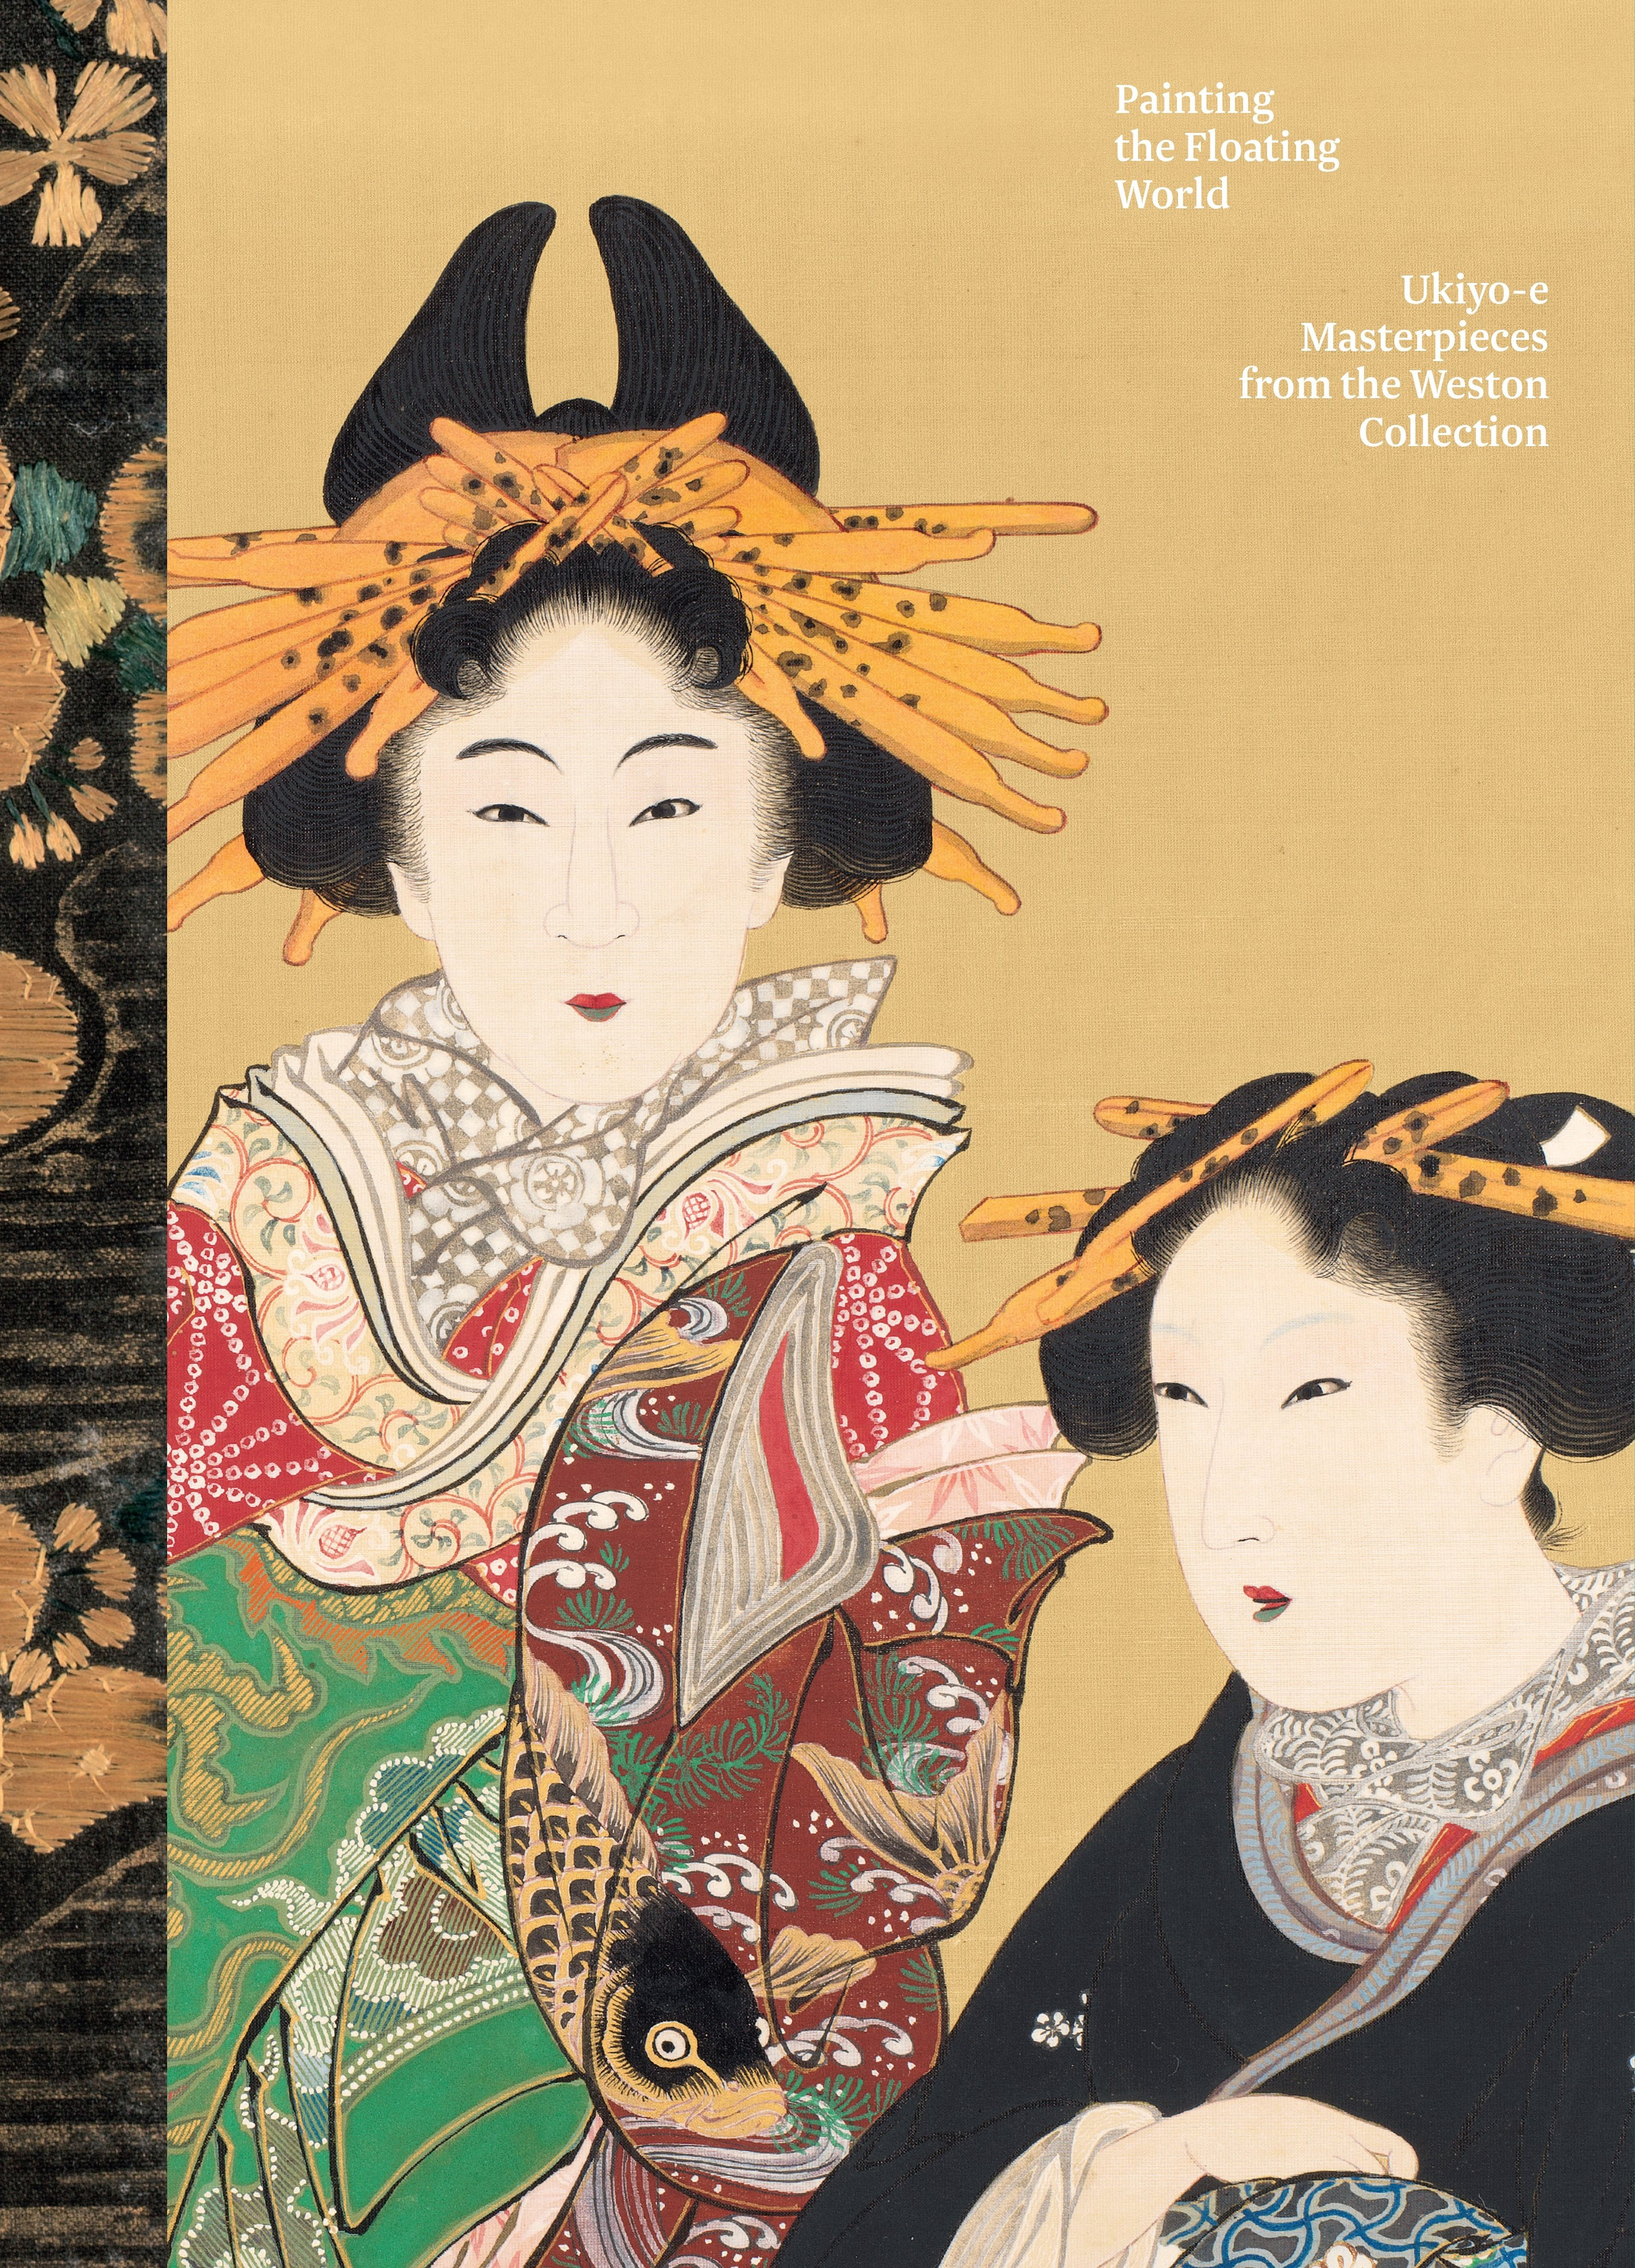 """The cover of the exhibition catalogue for """"Painting the Floating World,"""" highlighting a painting of two women with elaborate dress and hairstyles."""